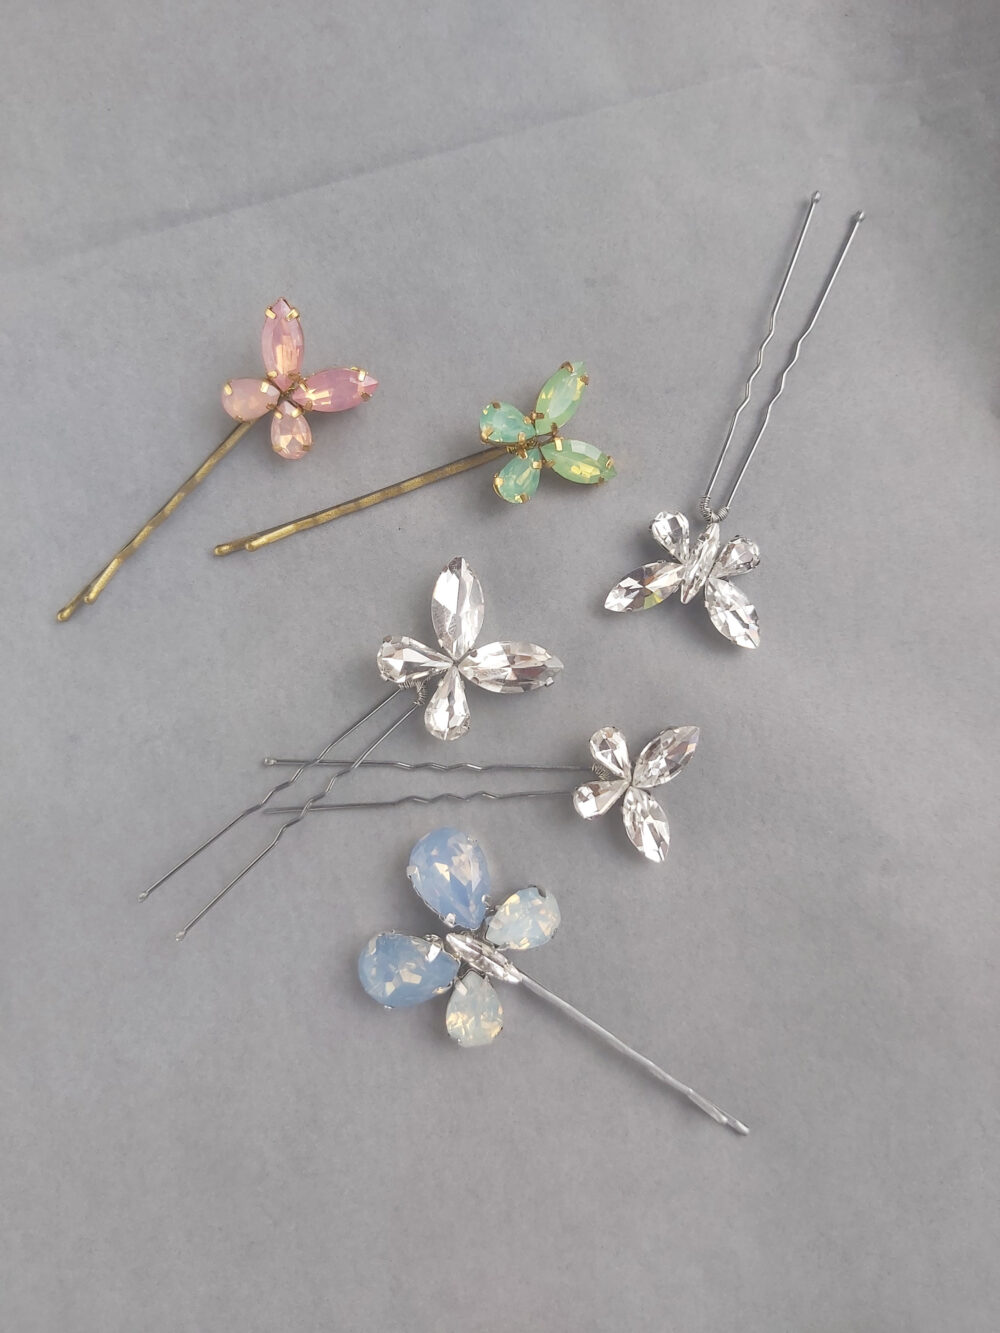 Butterfly Wedding Hair Piece Winter Fairy Accessory Crystal Pin Green Bobby Pins Gift Moonstone Clear Quartz Fluorite Rose